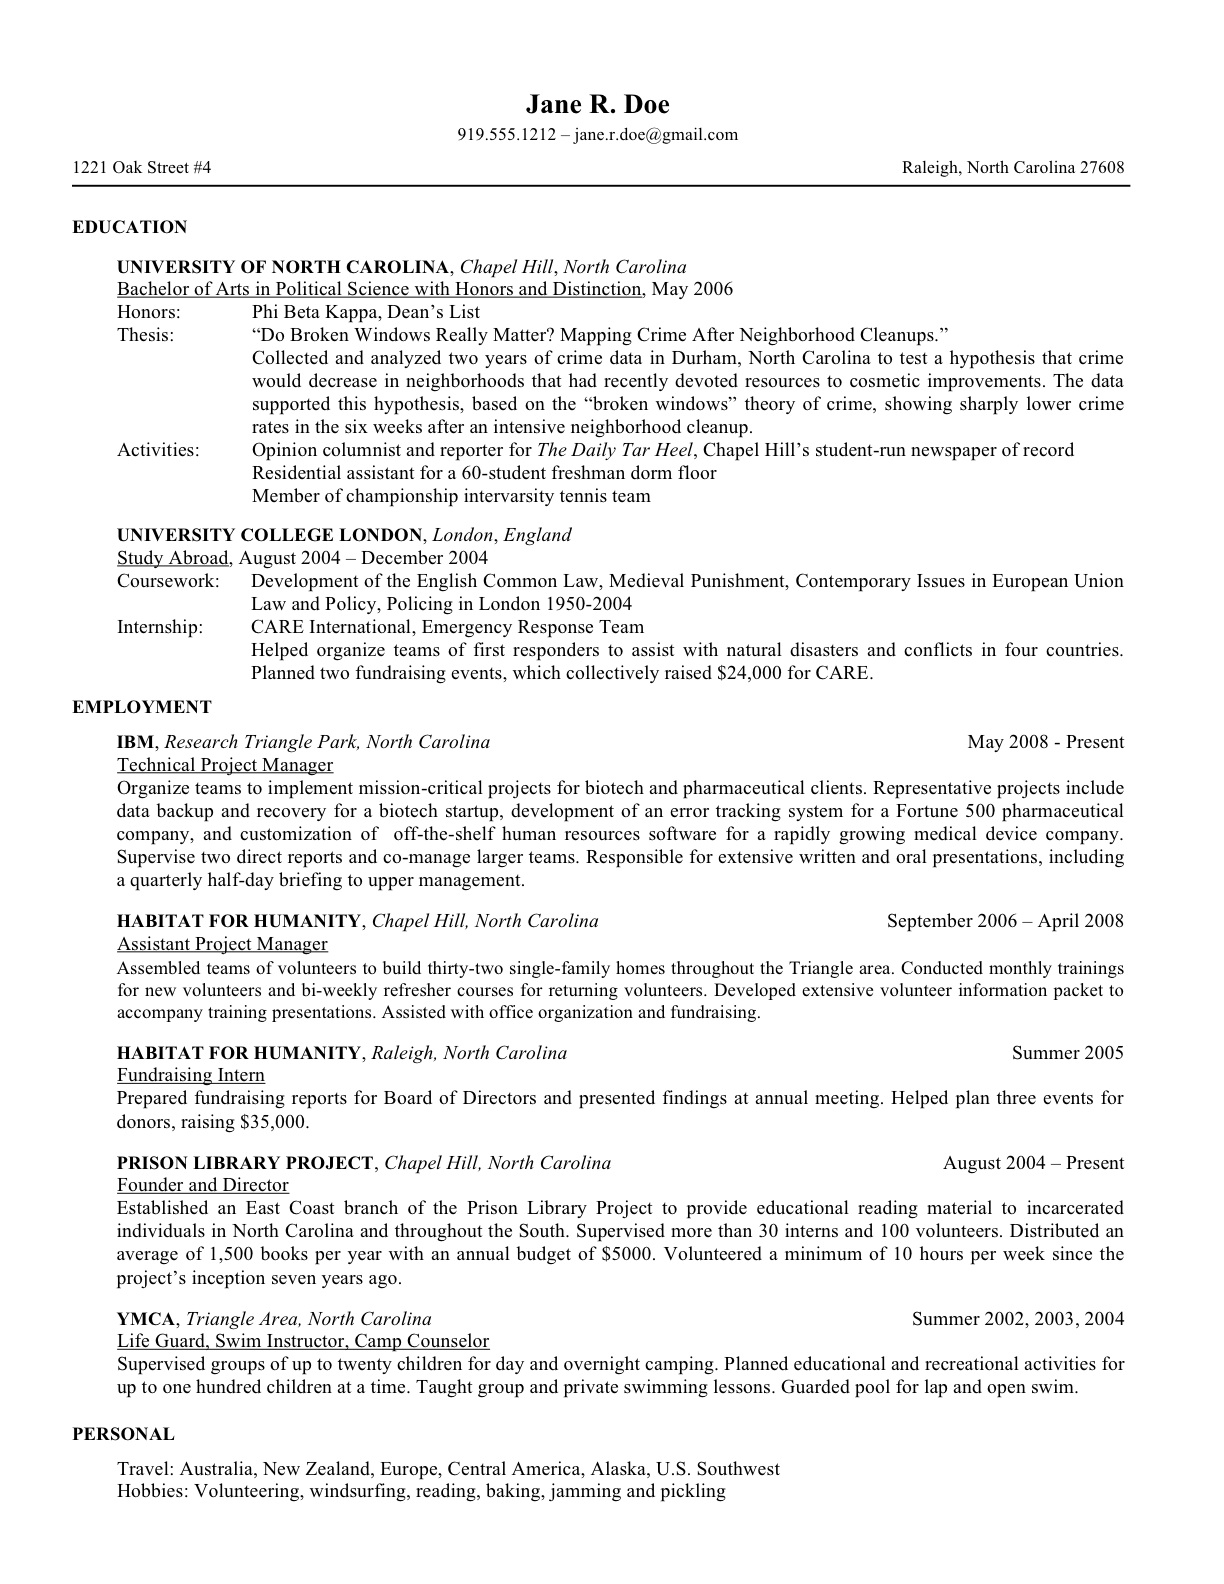 how to make a resume for a highschool student australia